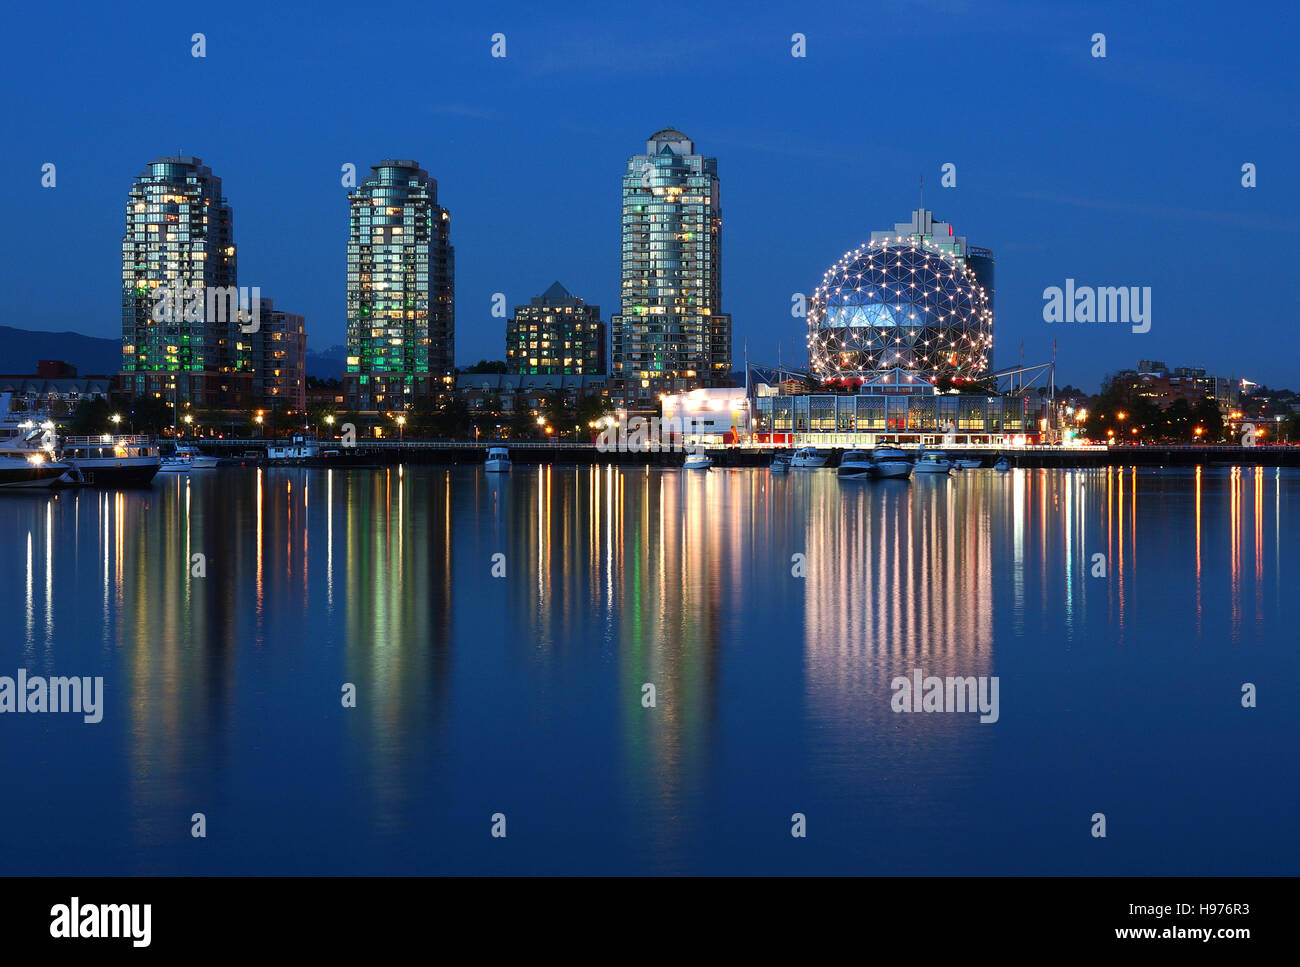 False Creek and Science World in the blue hour, Vancouver, Canada - Stock Image